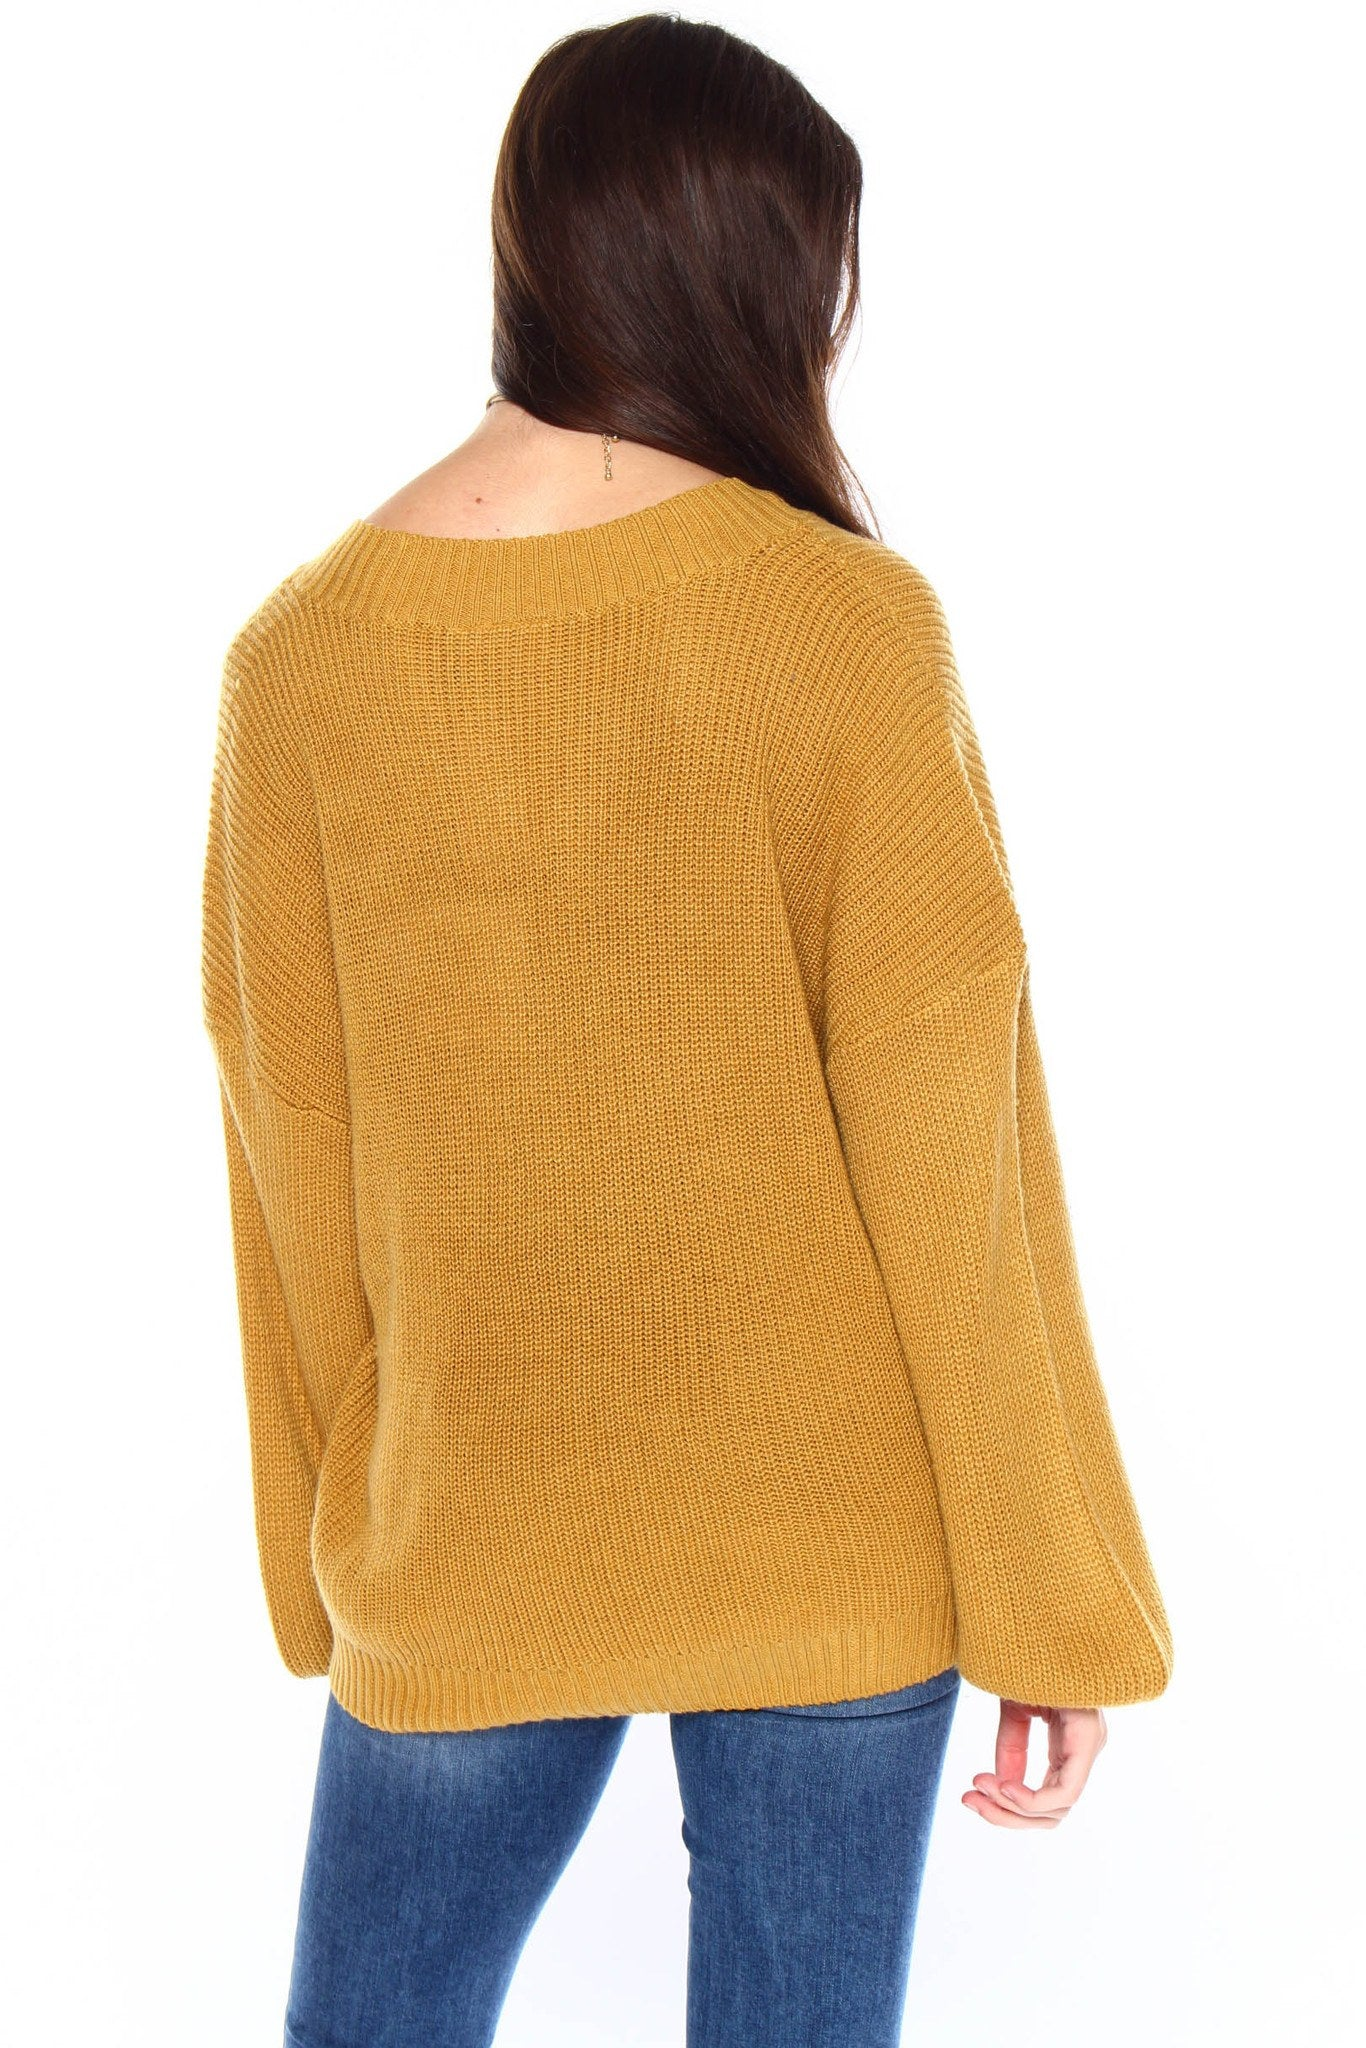 Somedays Lovin' Honey Jam Sweater